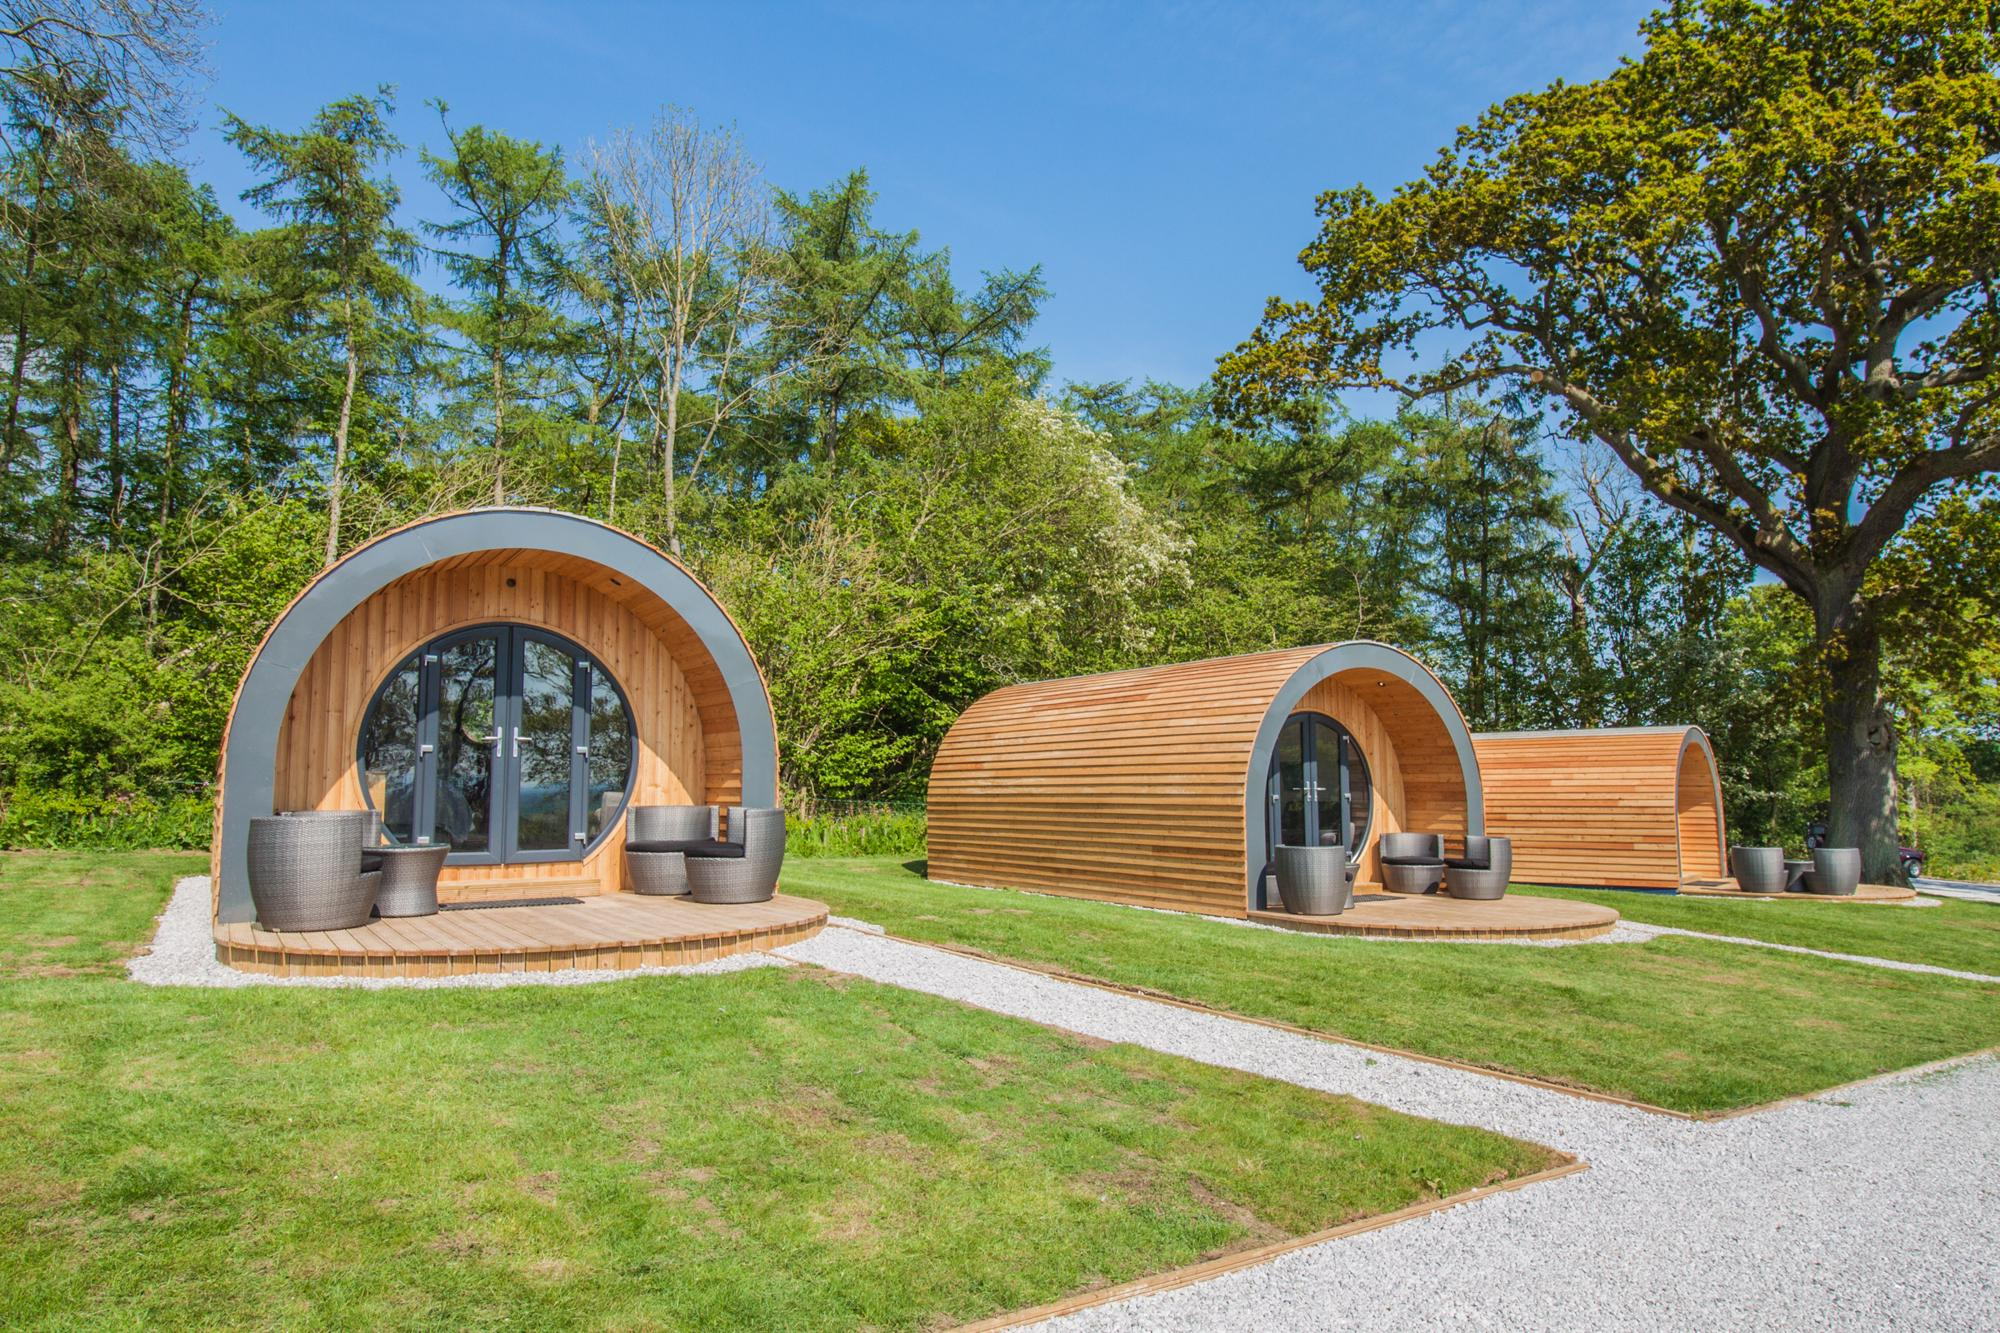 Glamping with hot tubs in yorkshire - Glampingly collects the best glamping sites